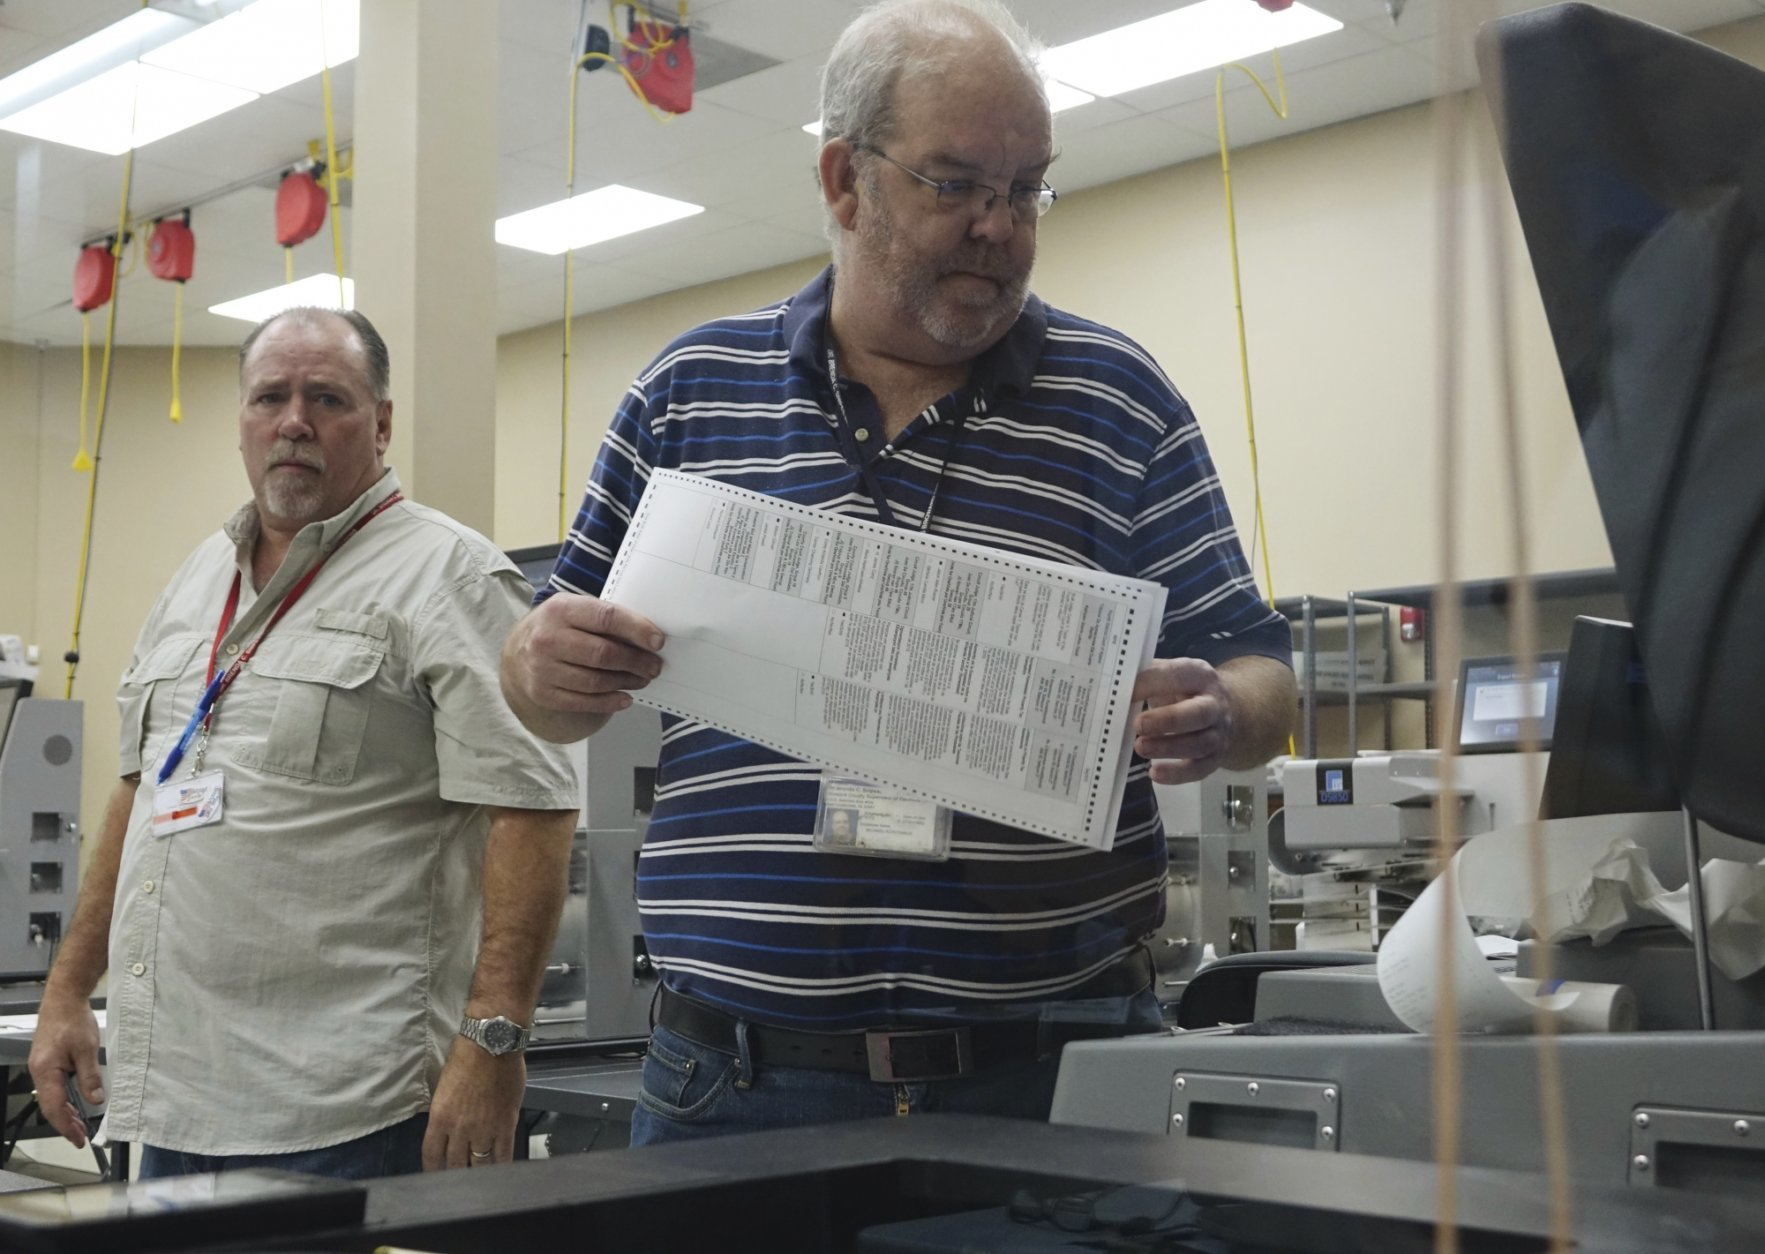 Election workers place ballots into electronic counting machines, Sunday, Nov. 11, 2018, at the Broward Supervisor of Elections office in Lauderhill, Fla. The Florida recount began Sunday morning in Broward County. (Joe Cavaretta/South Florida Sun-Sentinel via AP)